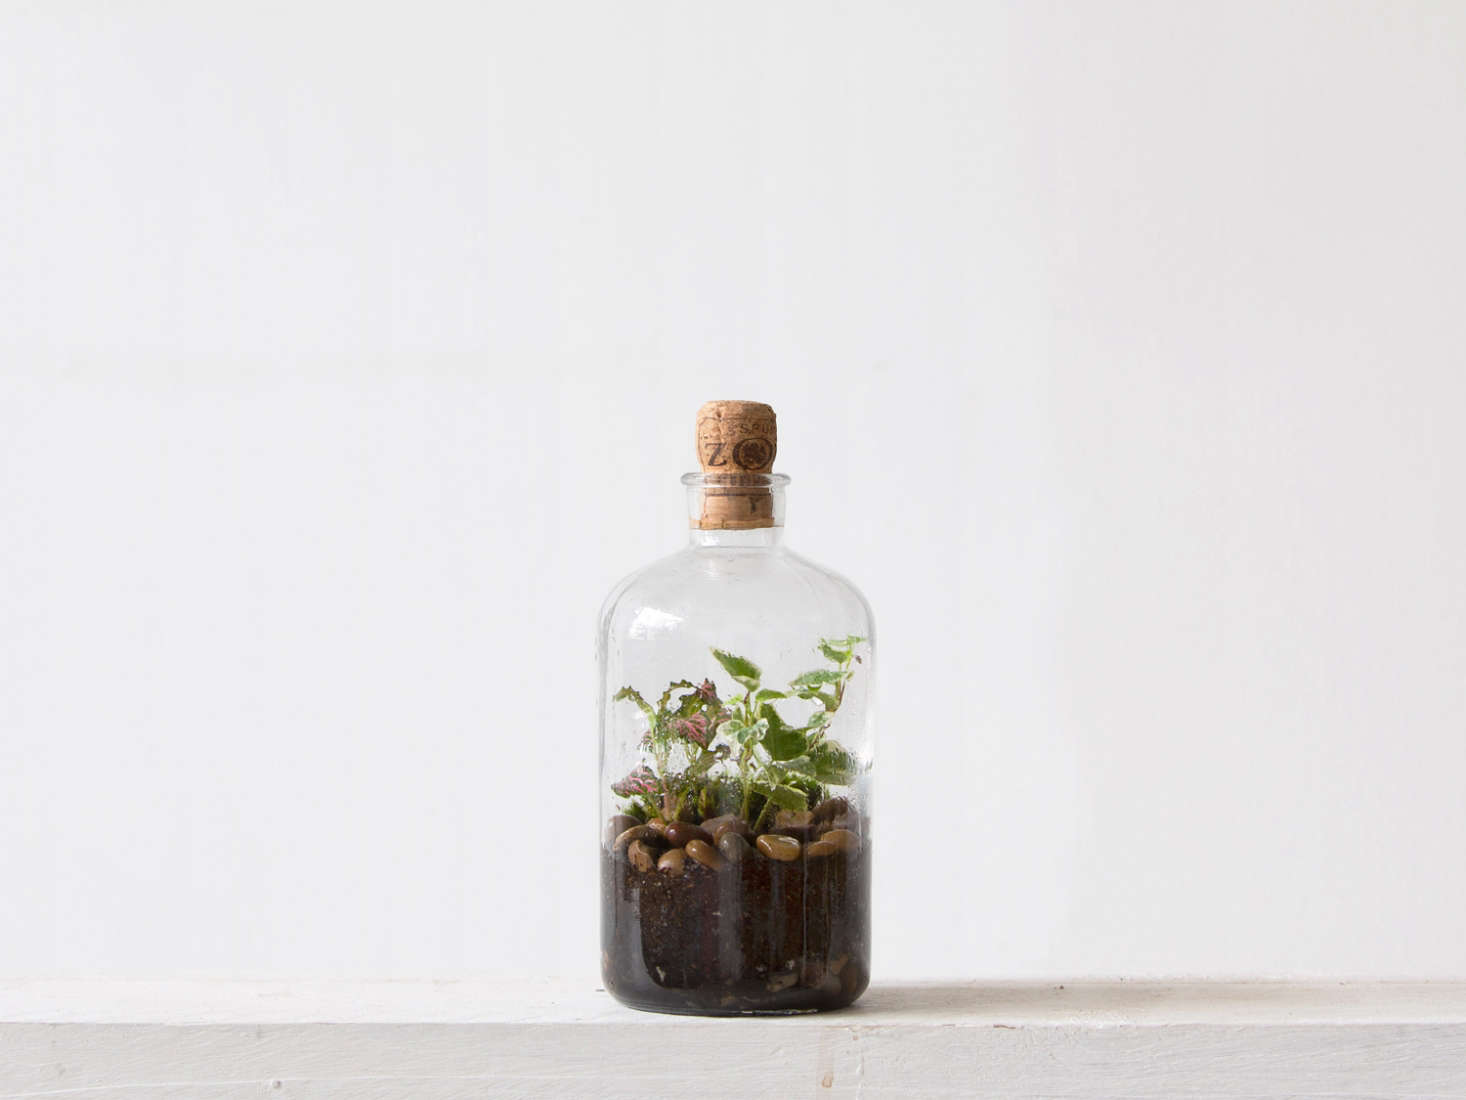 A Tinyjohn Terrarium, although a mere 7 inches high, is home to Fittonia Albivenis, a variegated Ficus Pumila, a variegatedHedra Helix, and cushion moss(Leucobryum Glaucum); it is £50 from London Terrariums.